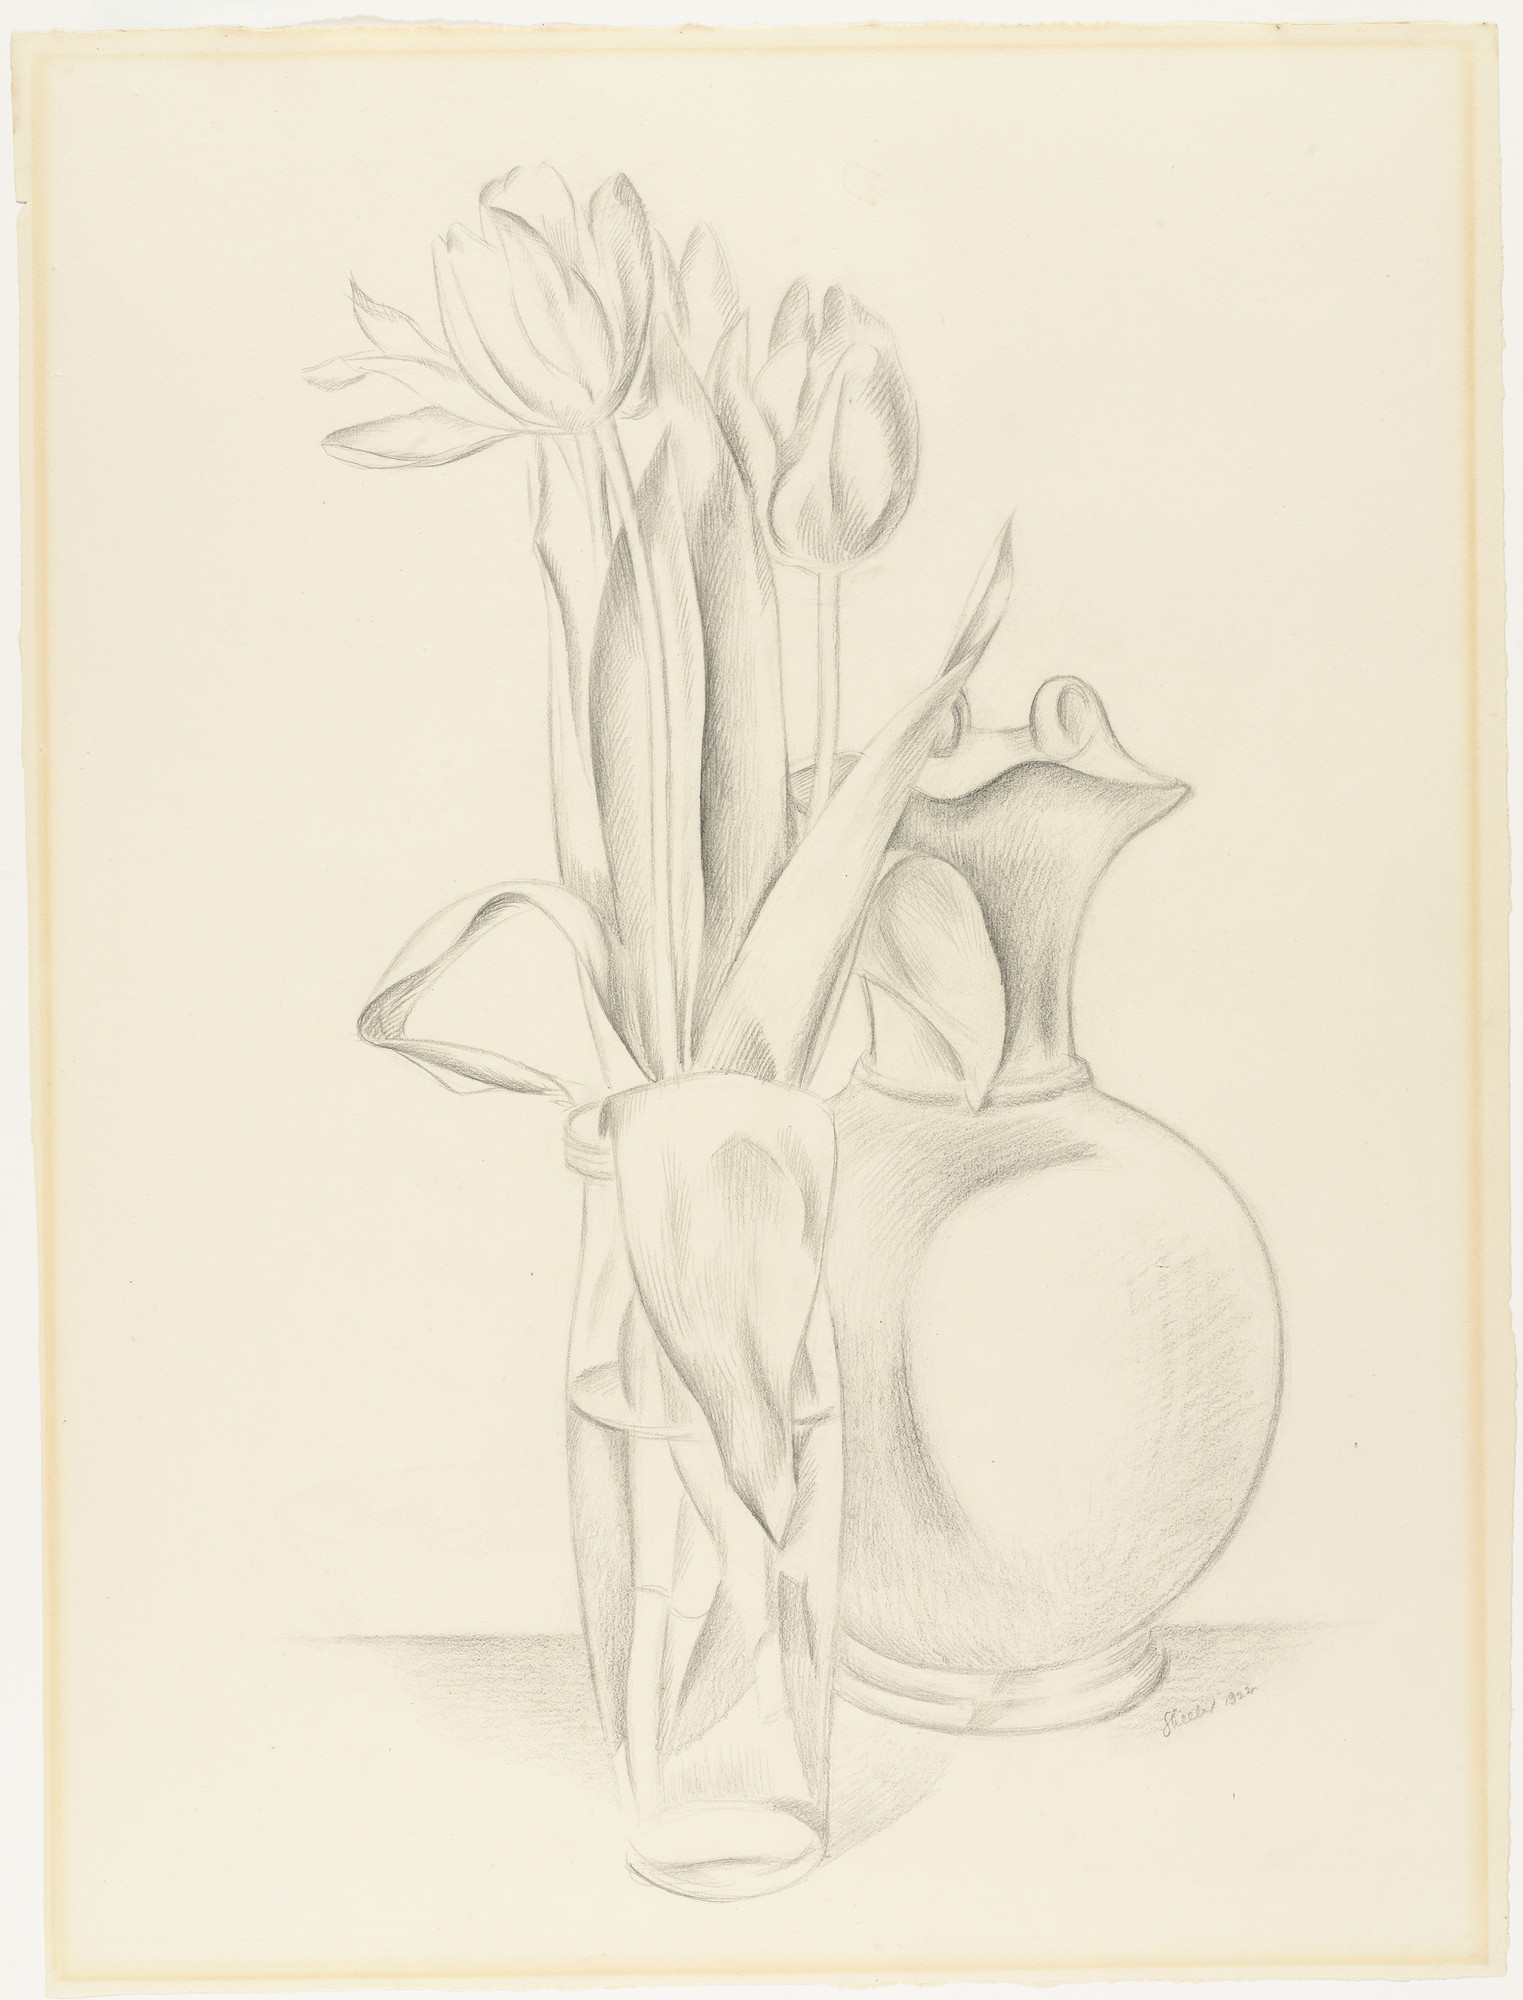 Charles Sheeler. Tulips and Etruscan Vase. 1922